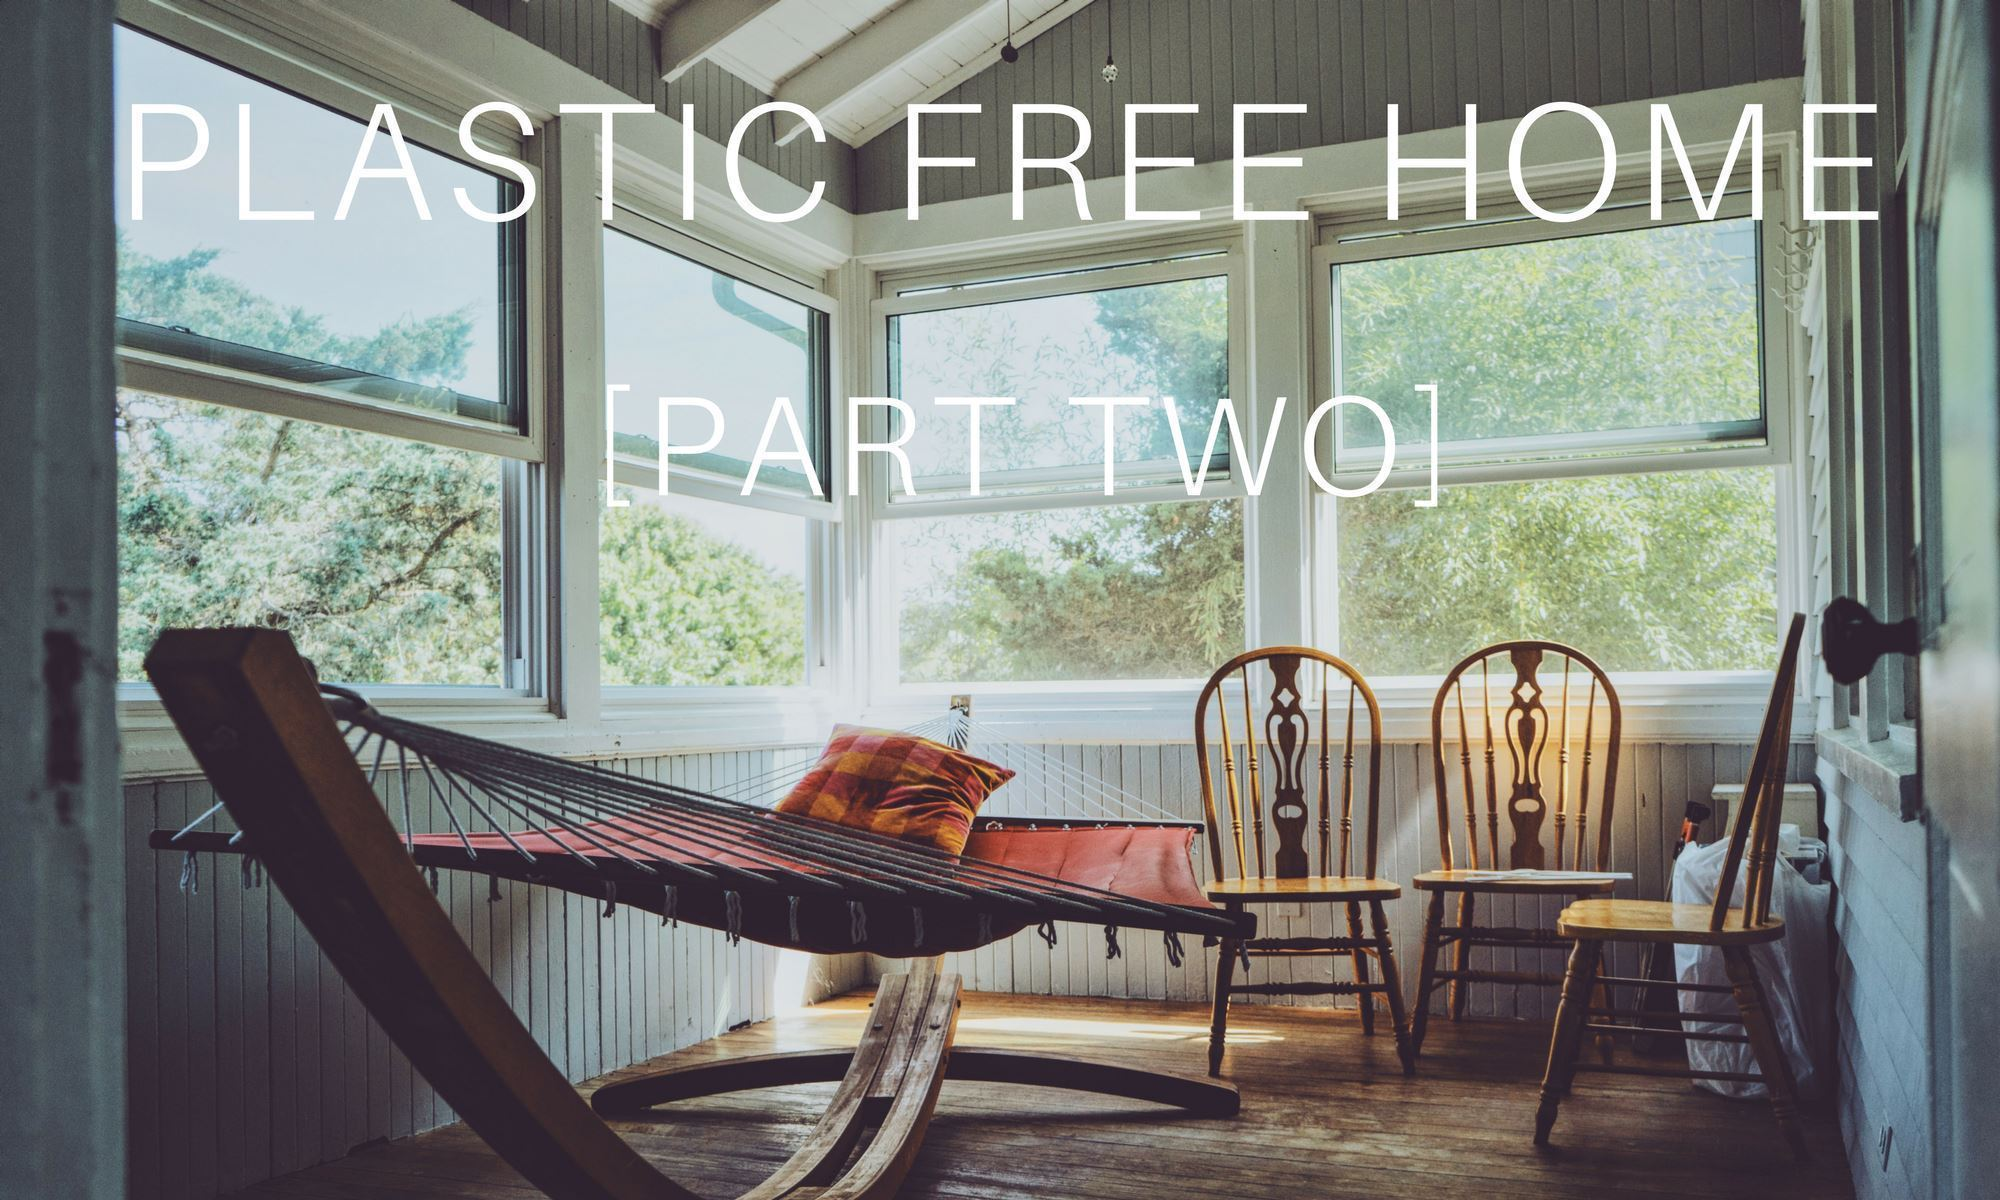 PLASTIC FREE HOME [PART TWO]